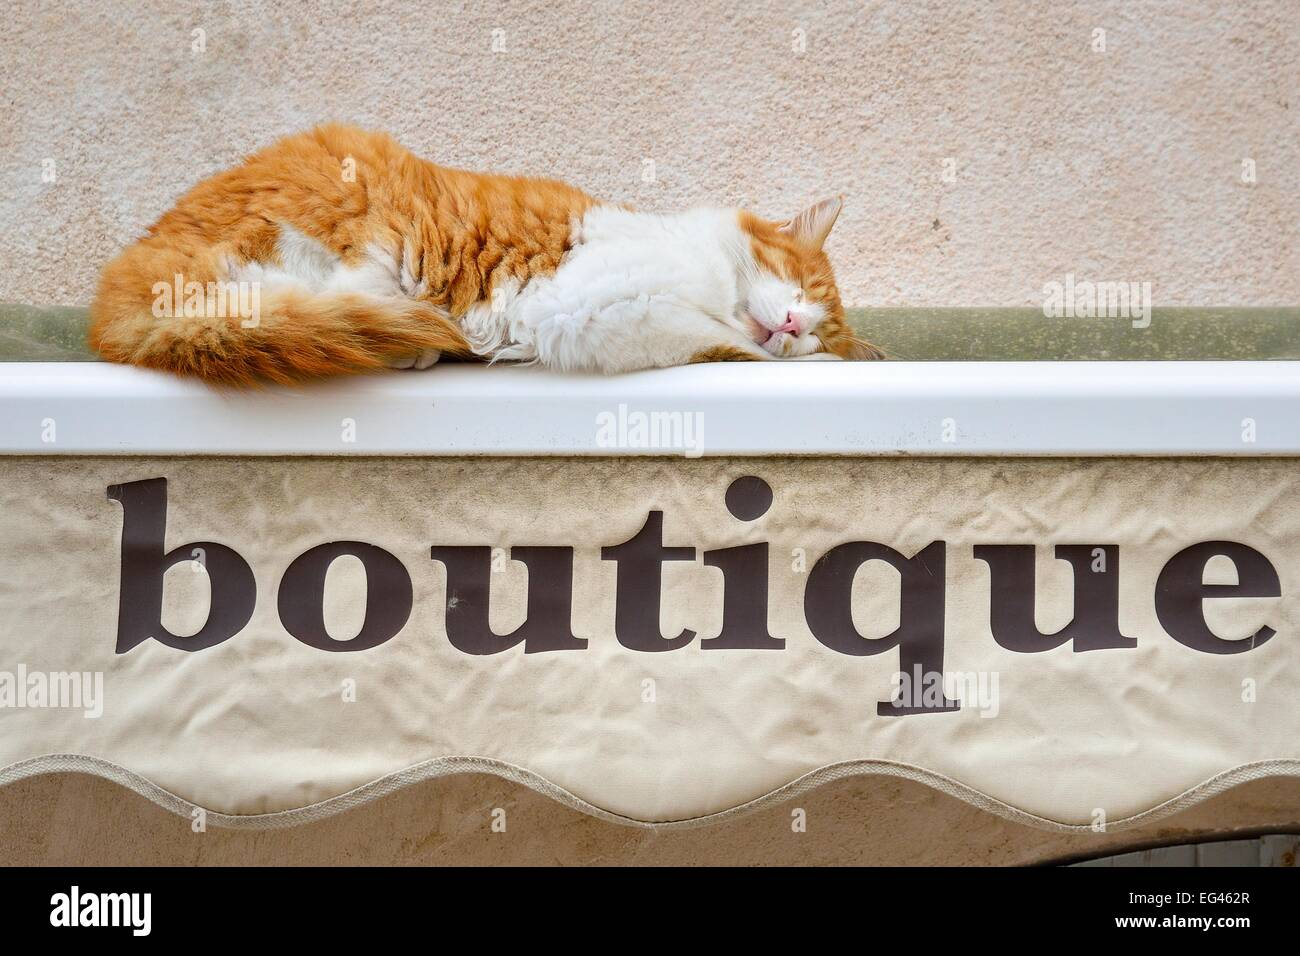 Sleeping cat on a rolled-up awning of a boutique, Bonifacio, Corse-du-Sud, Corsica, France - Stock Image